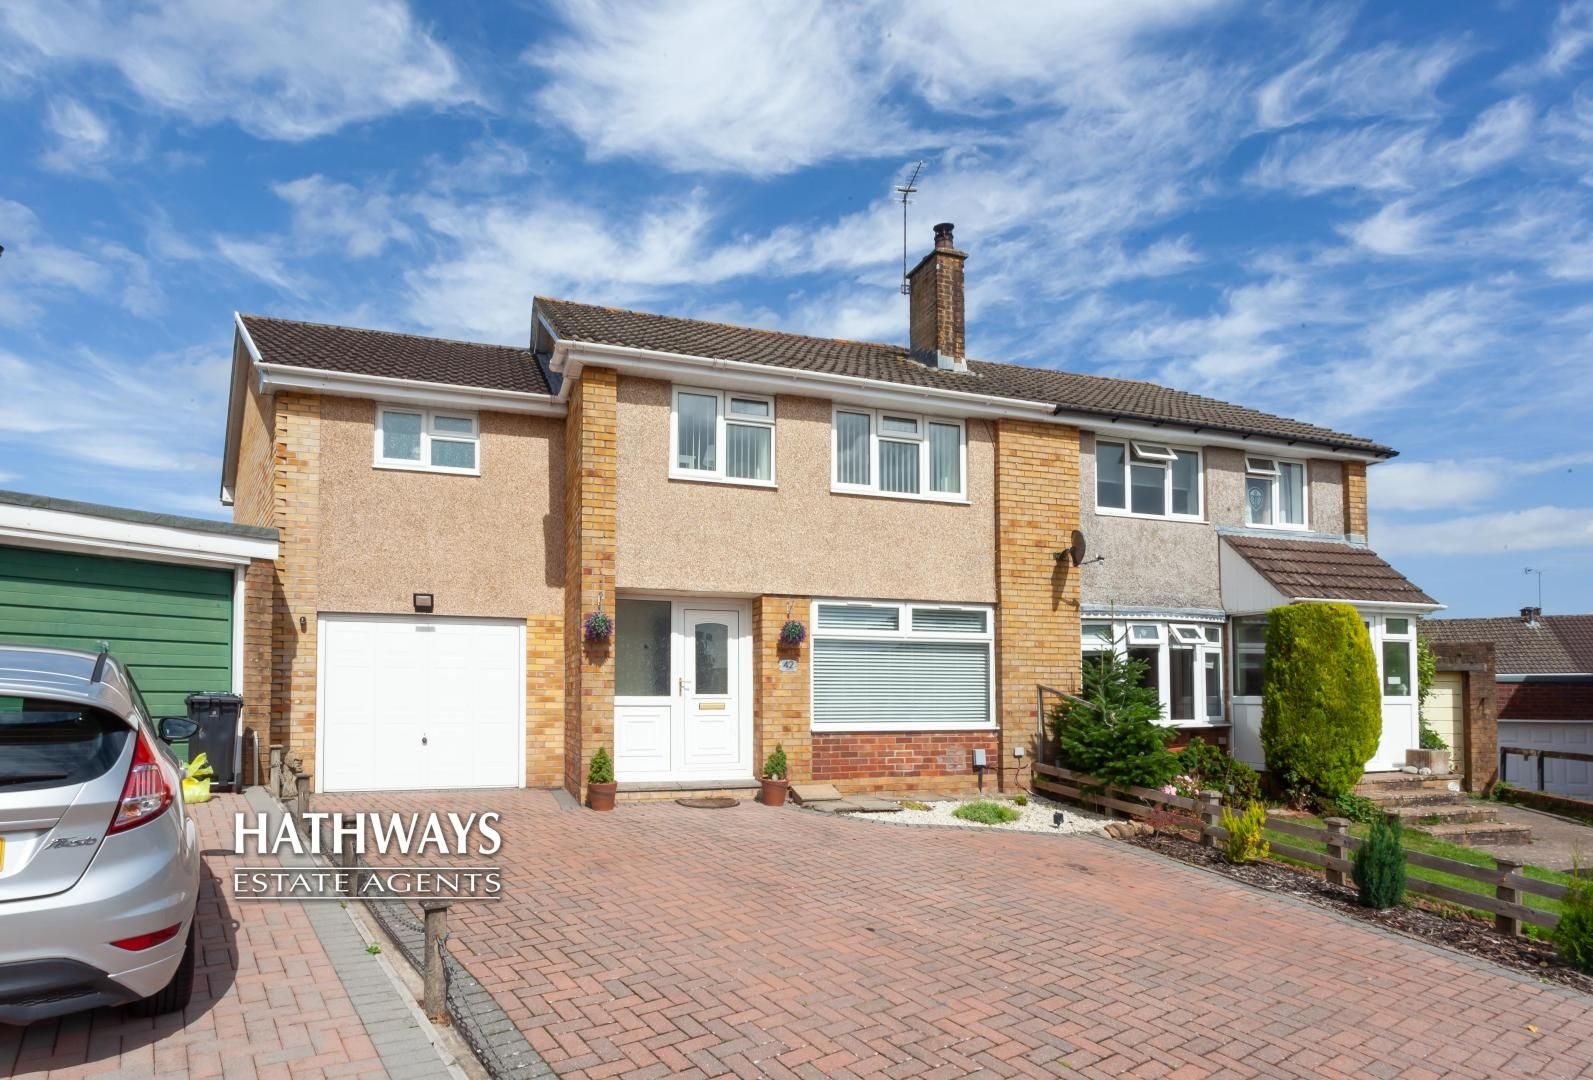 4 bed house for sale in Birchgrove Close, NP20